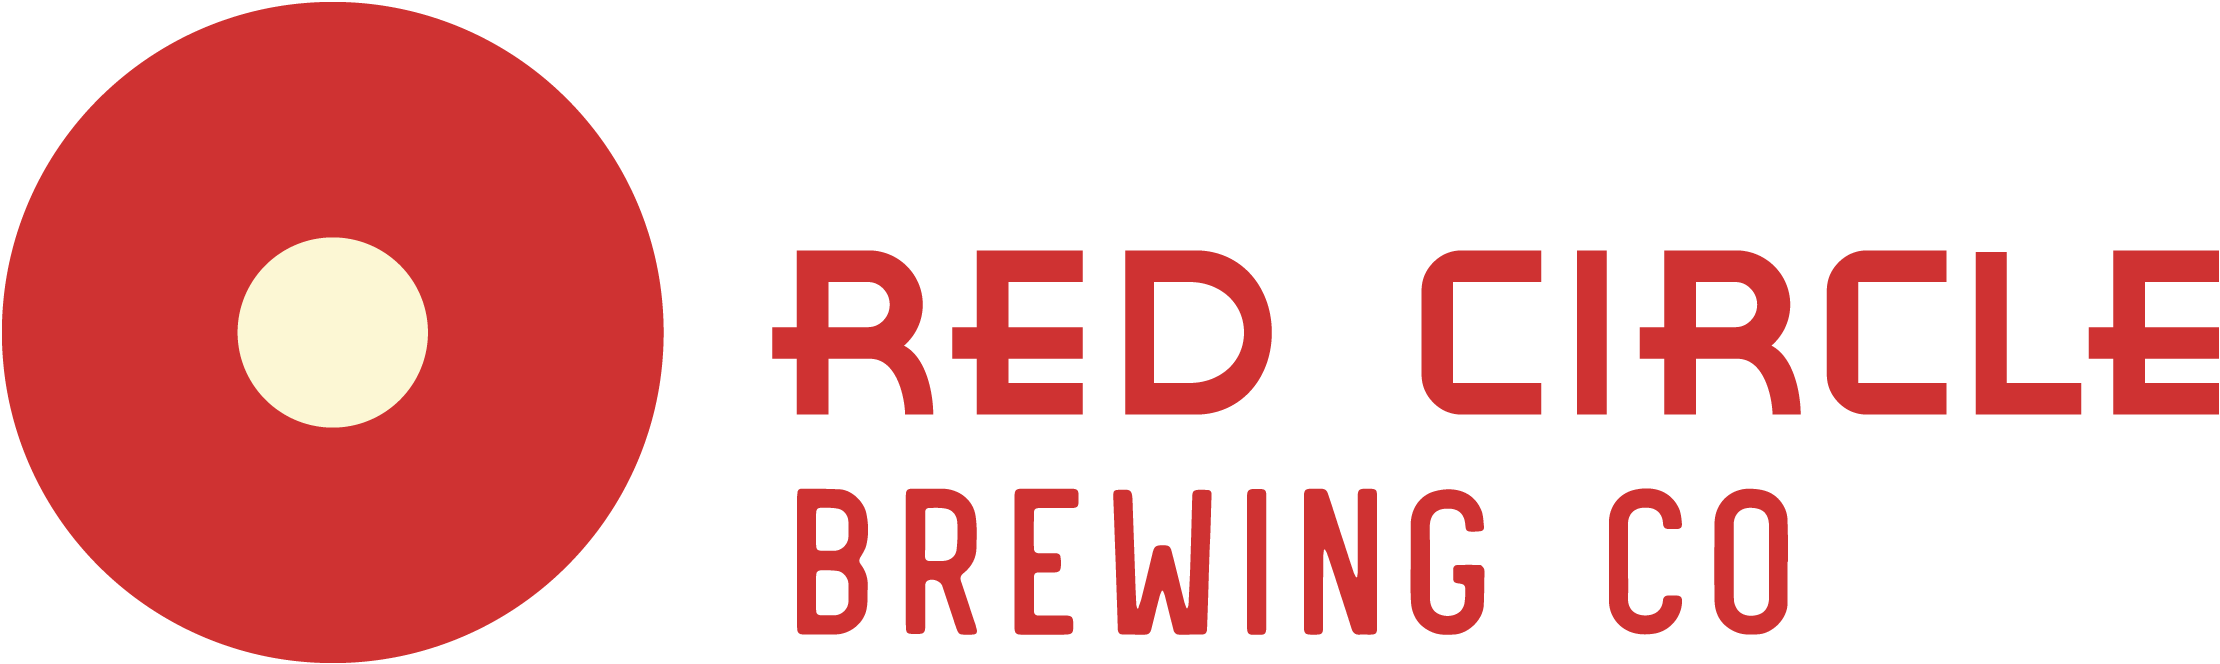 Red Circle Brewing Co. Logo